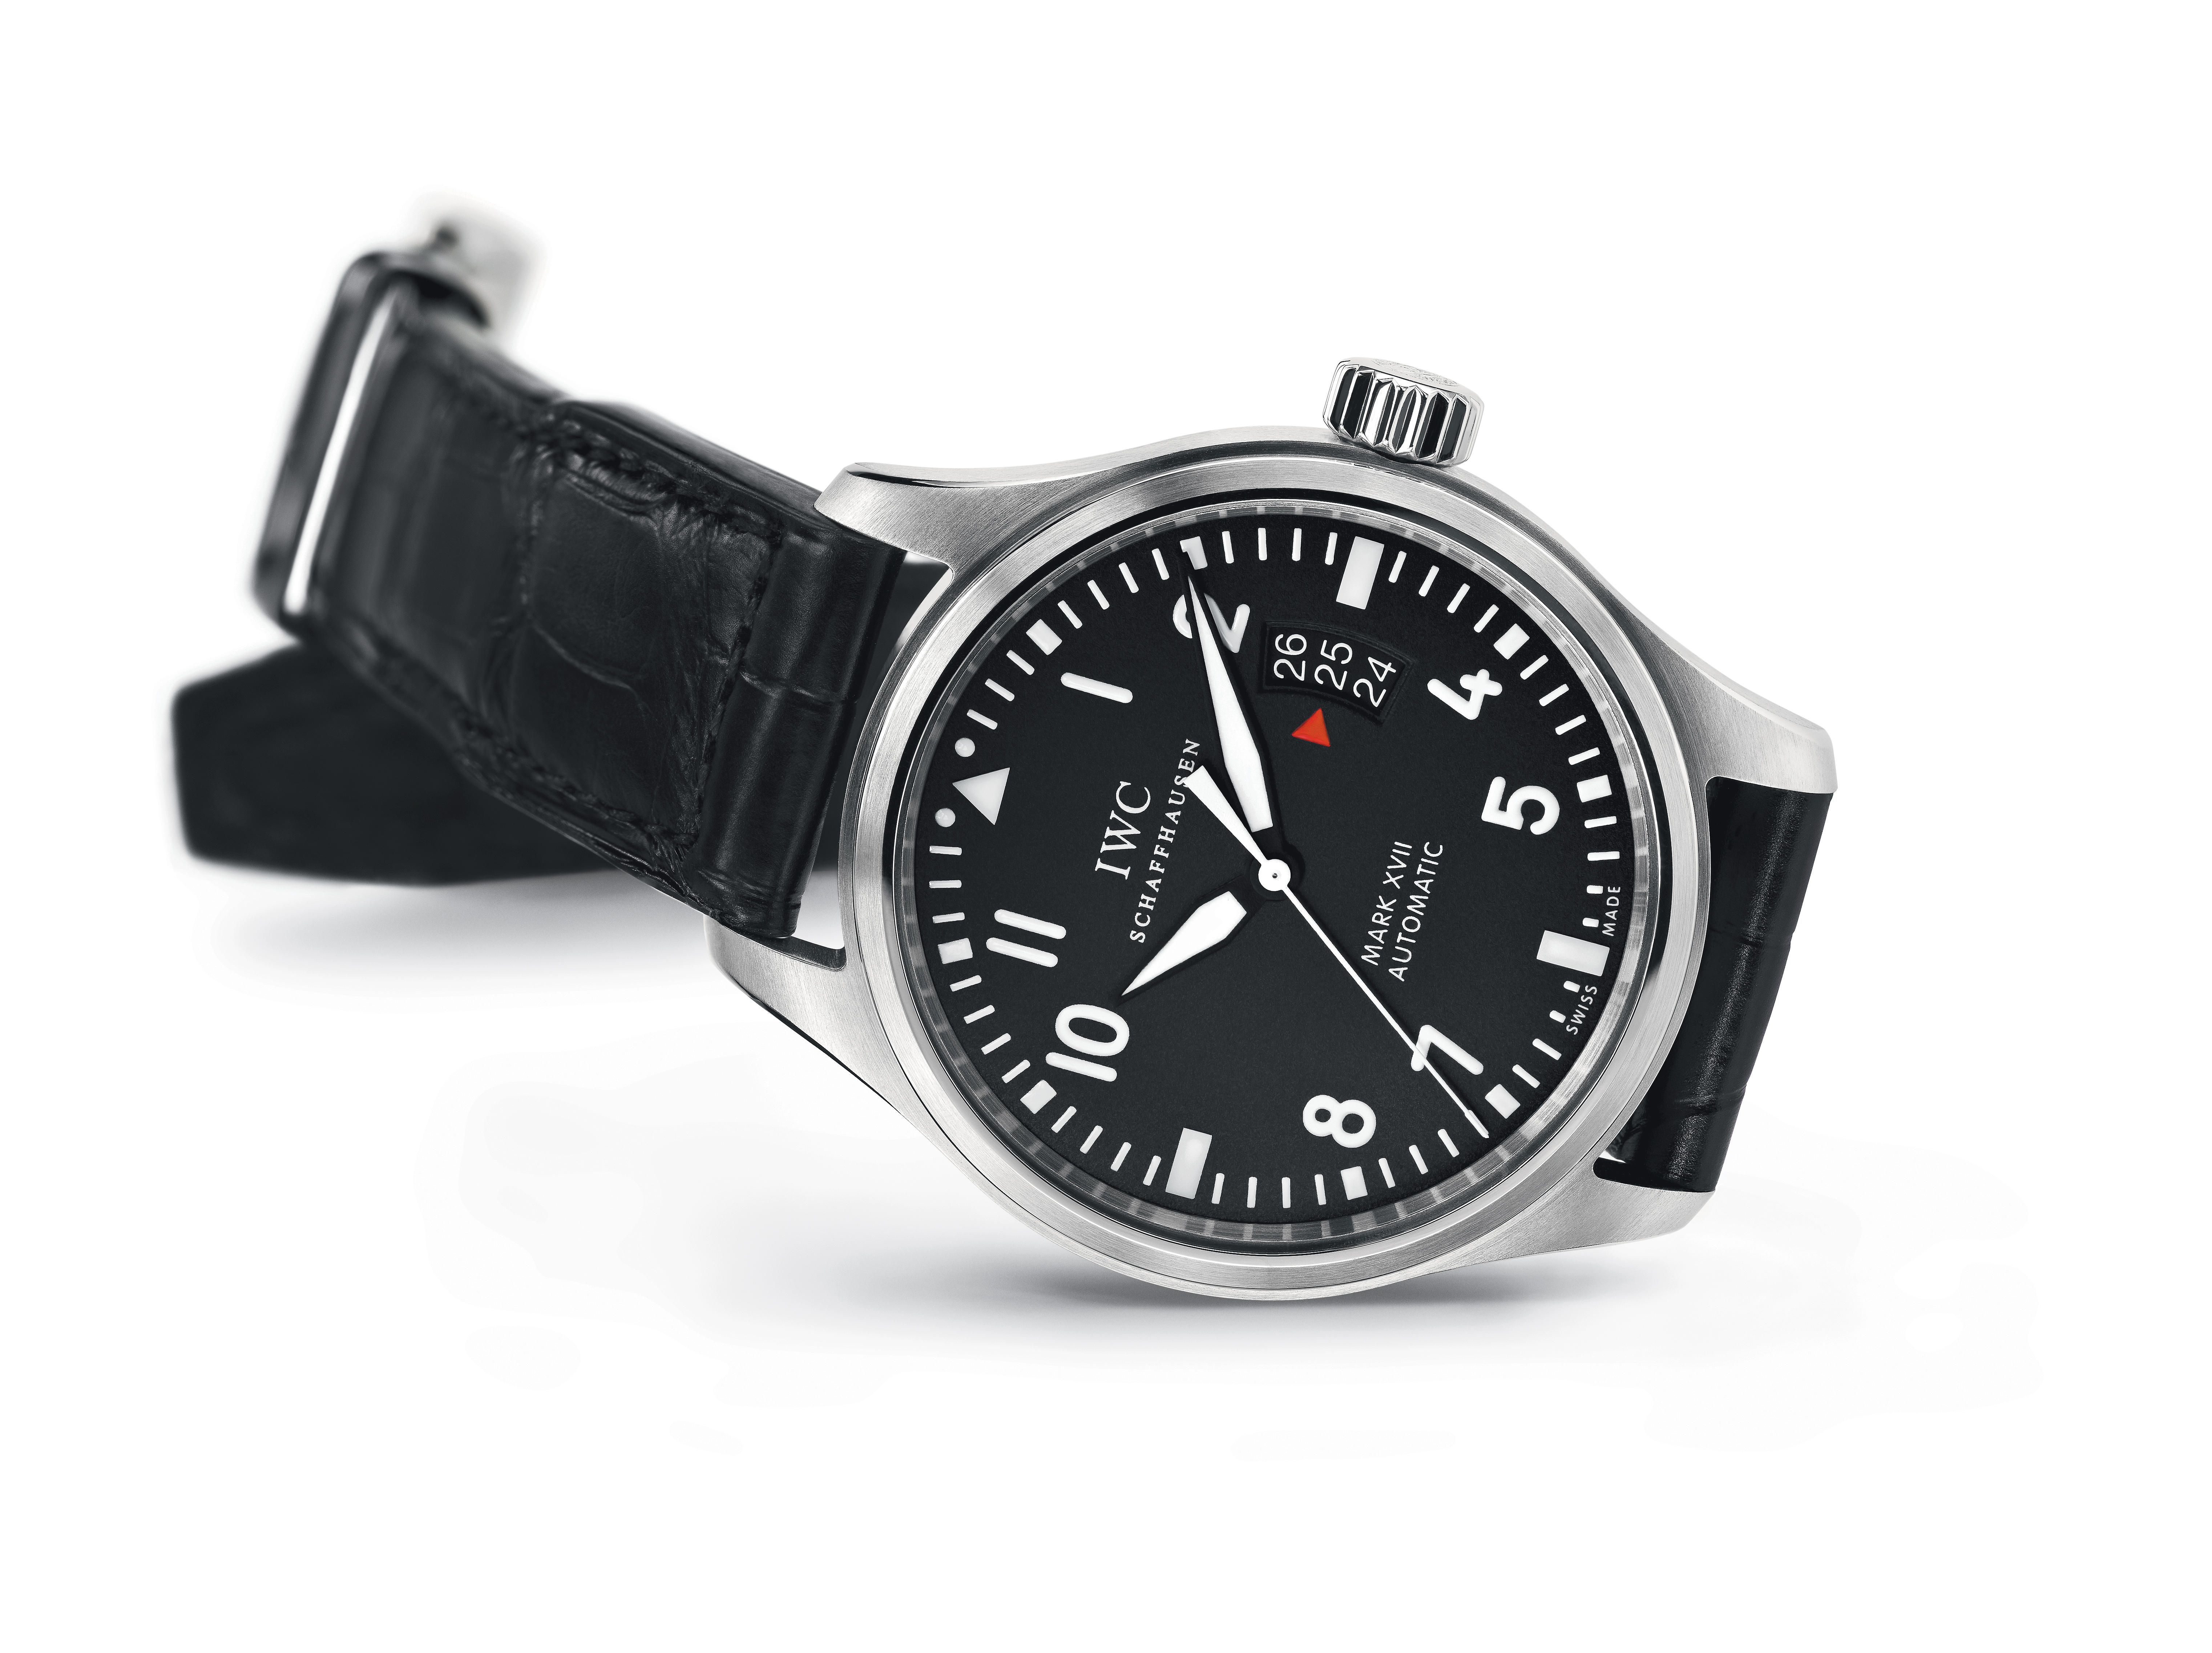 IWC PILOT'S WATCHES 2012